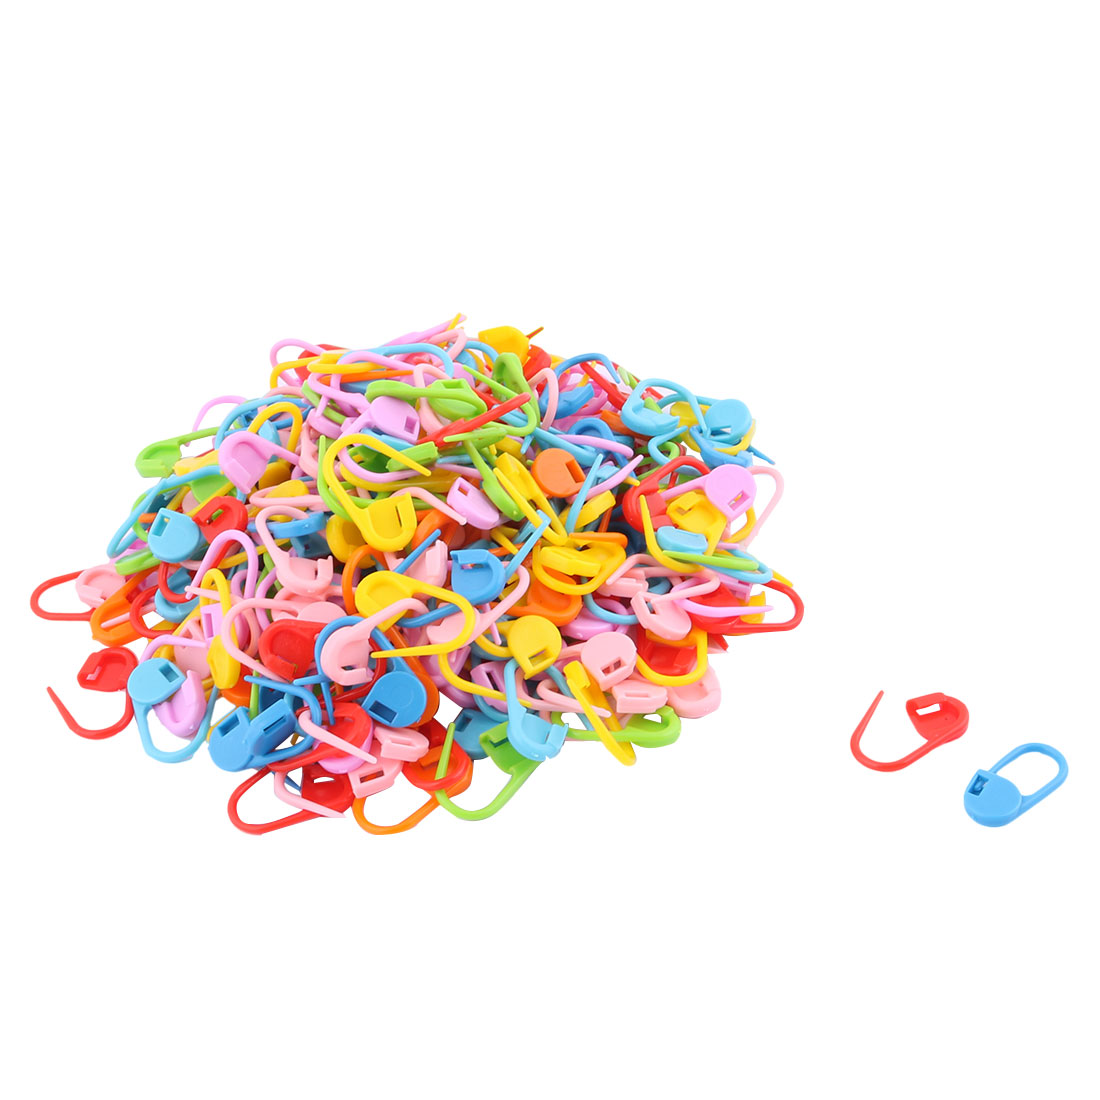 School Office Tailor Sewing Art Crafts Safety Pins Assorted Colors 270pcs